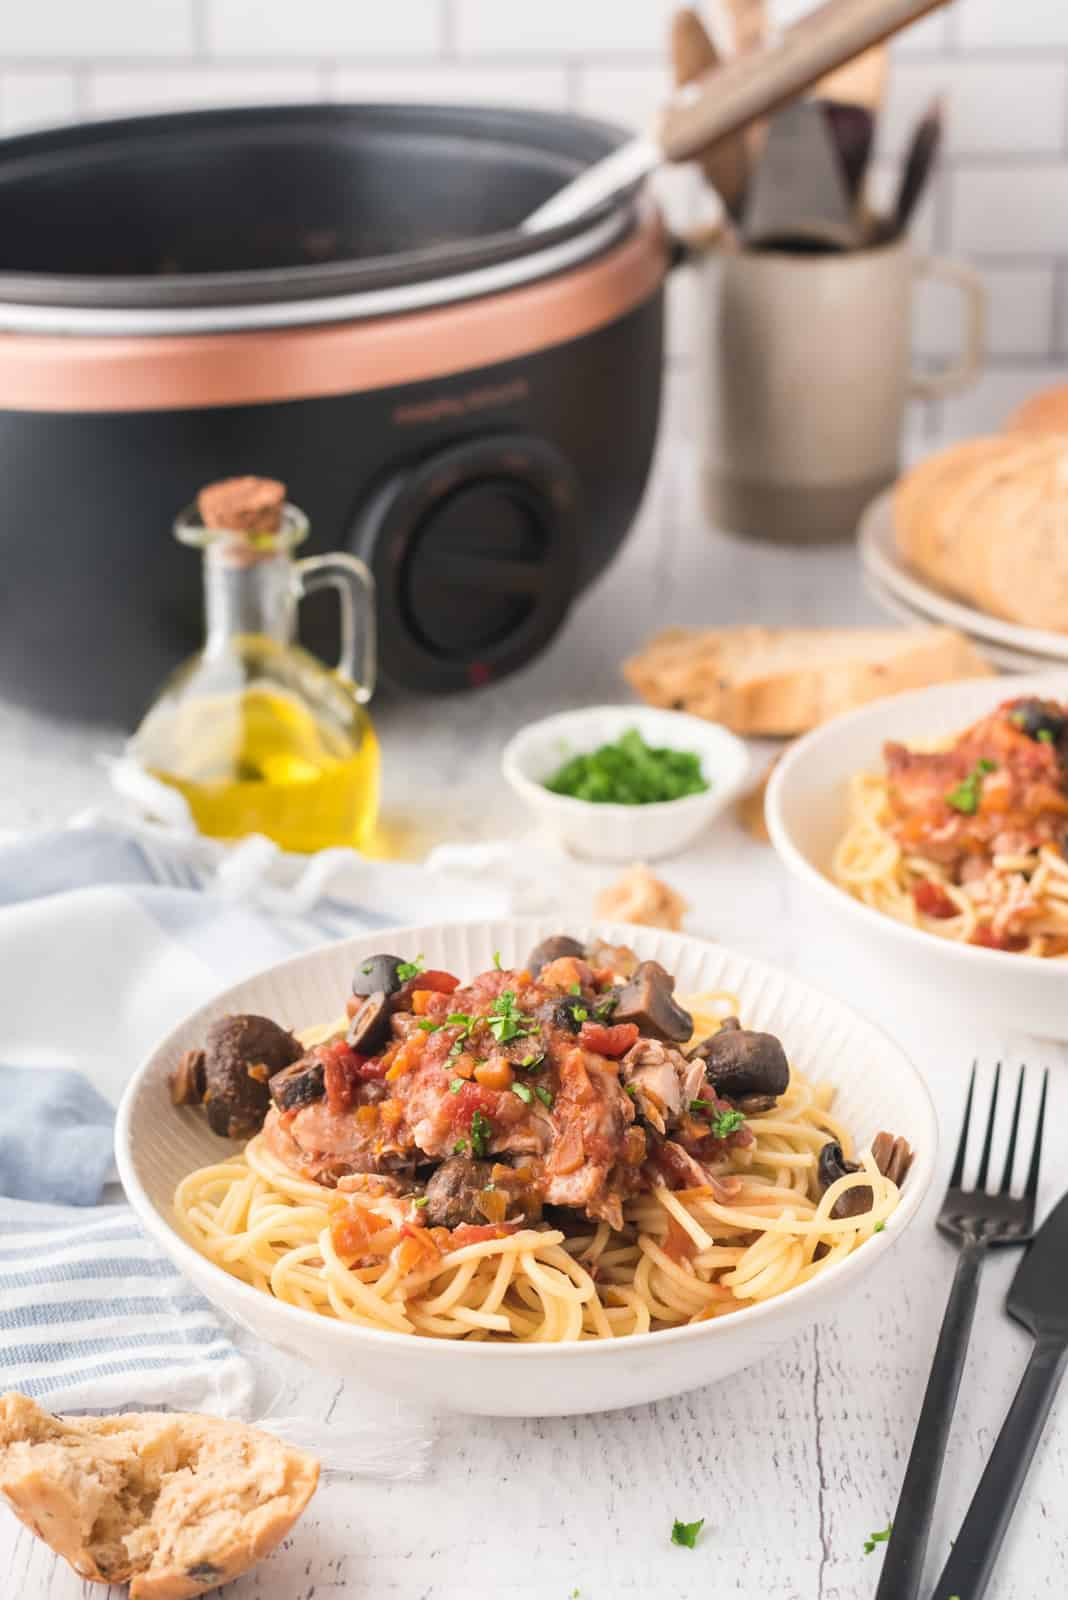 Slow Cooker Chicken Cacciatore over pasta in white bowl